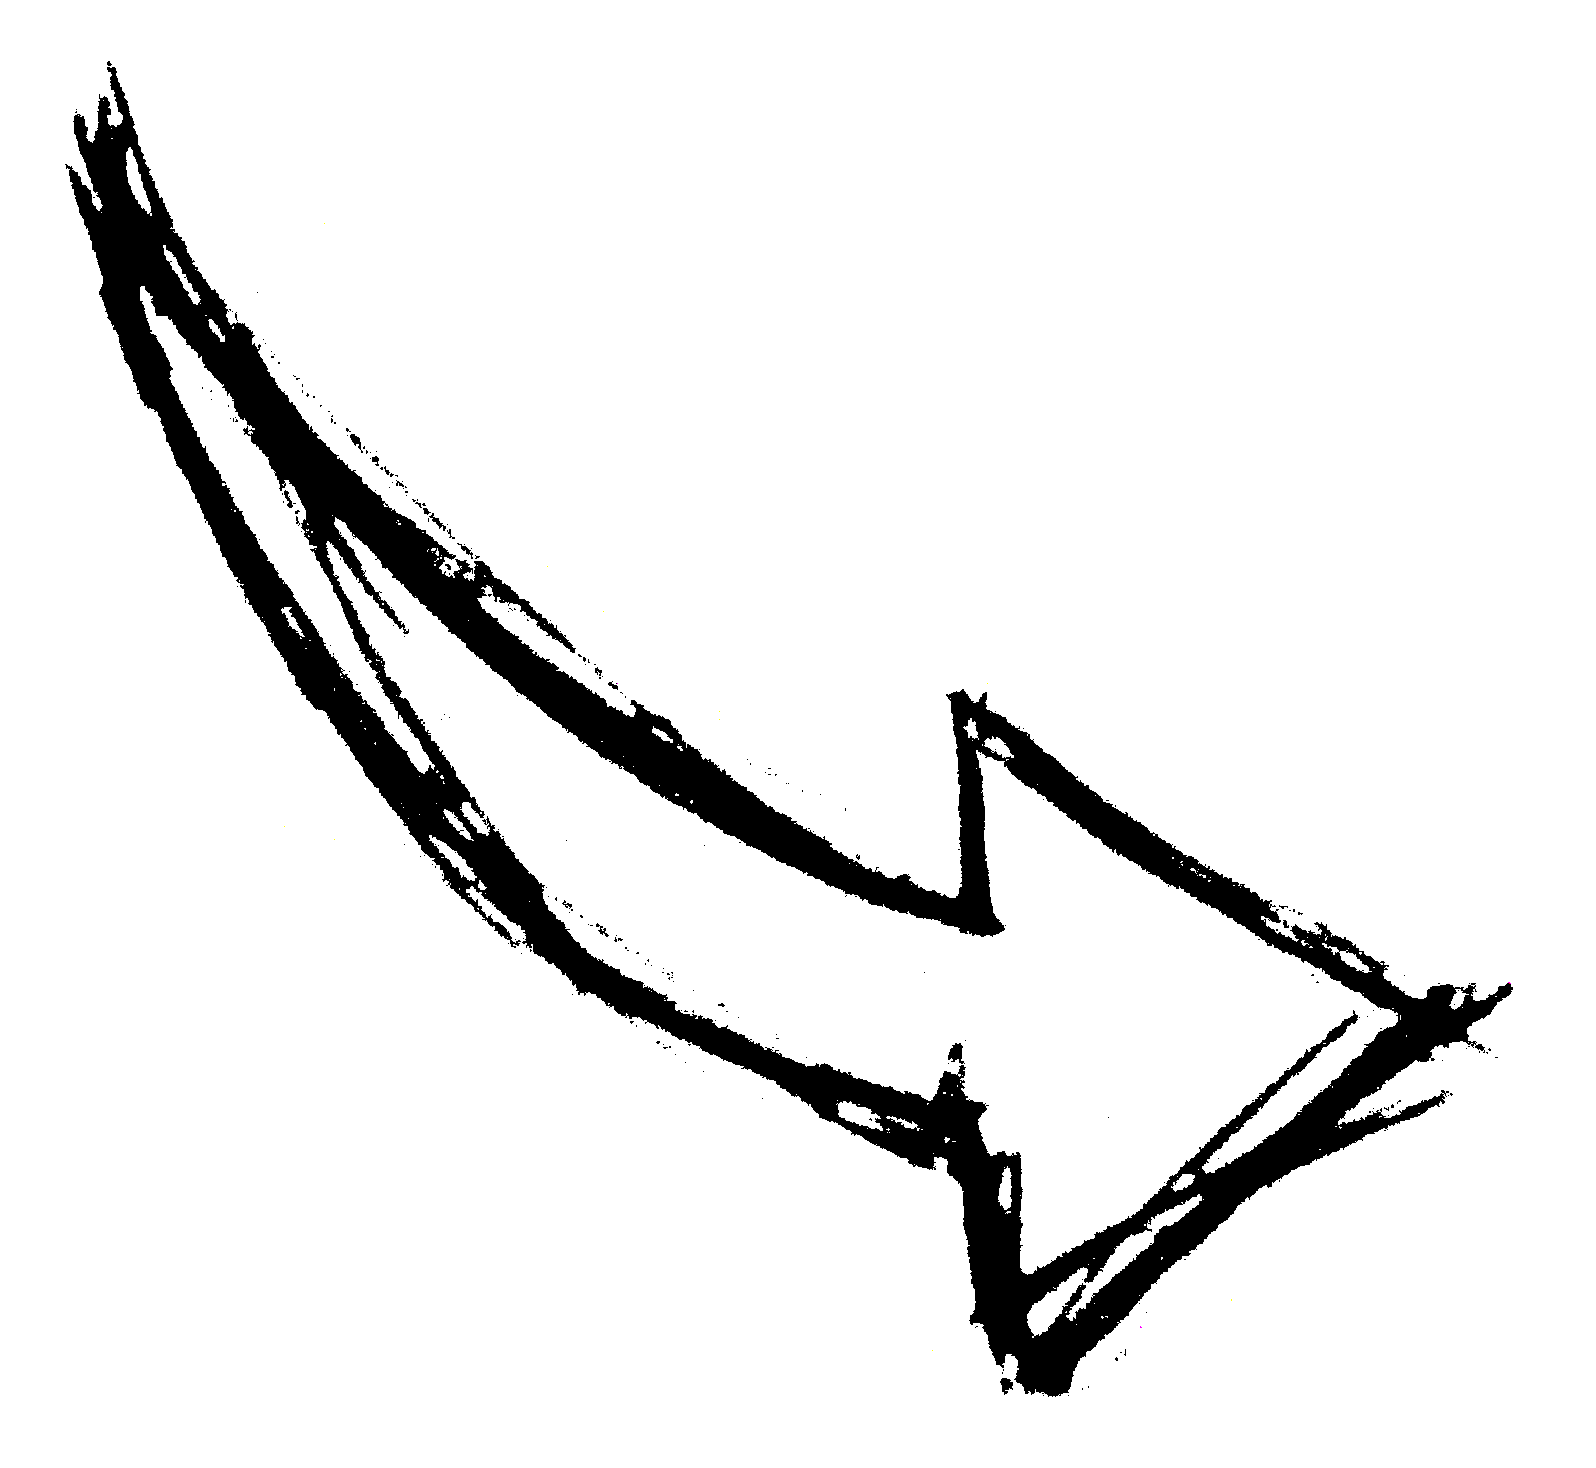 arrow drawing png